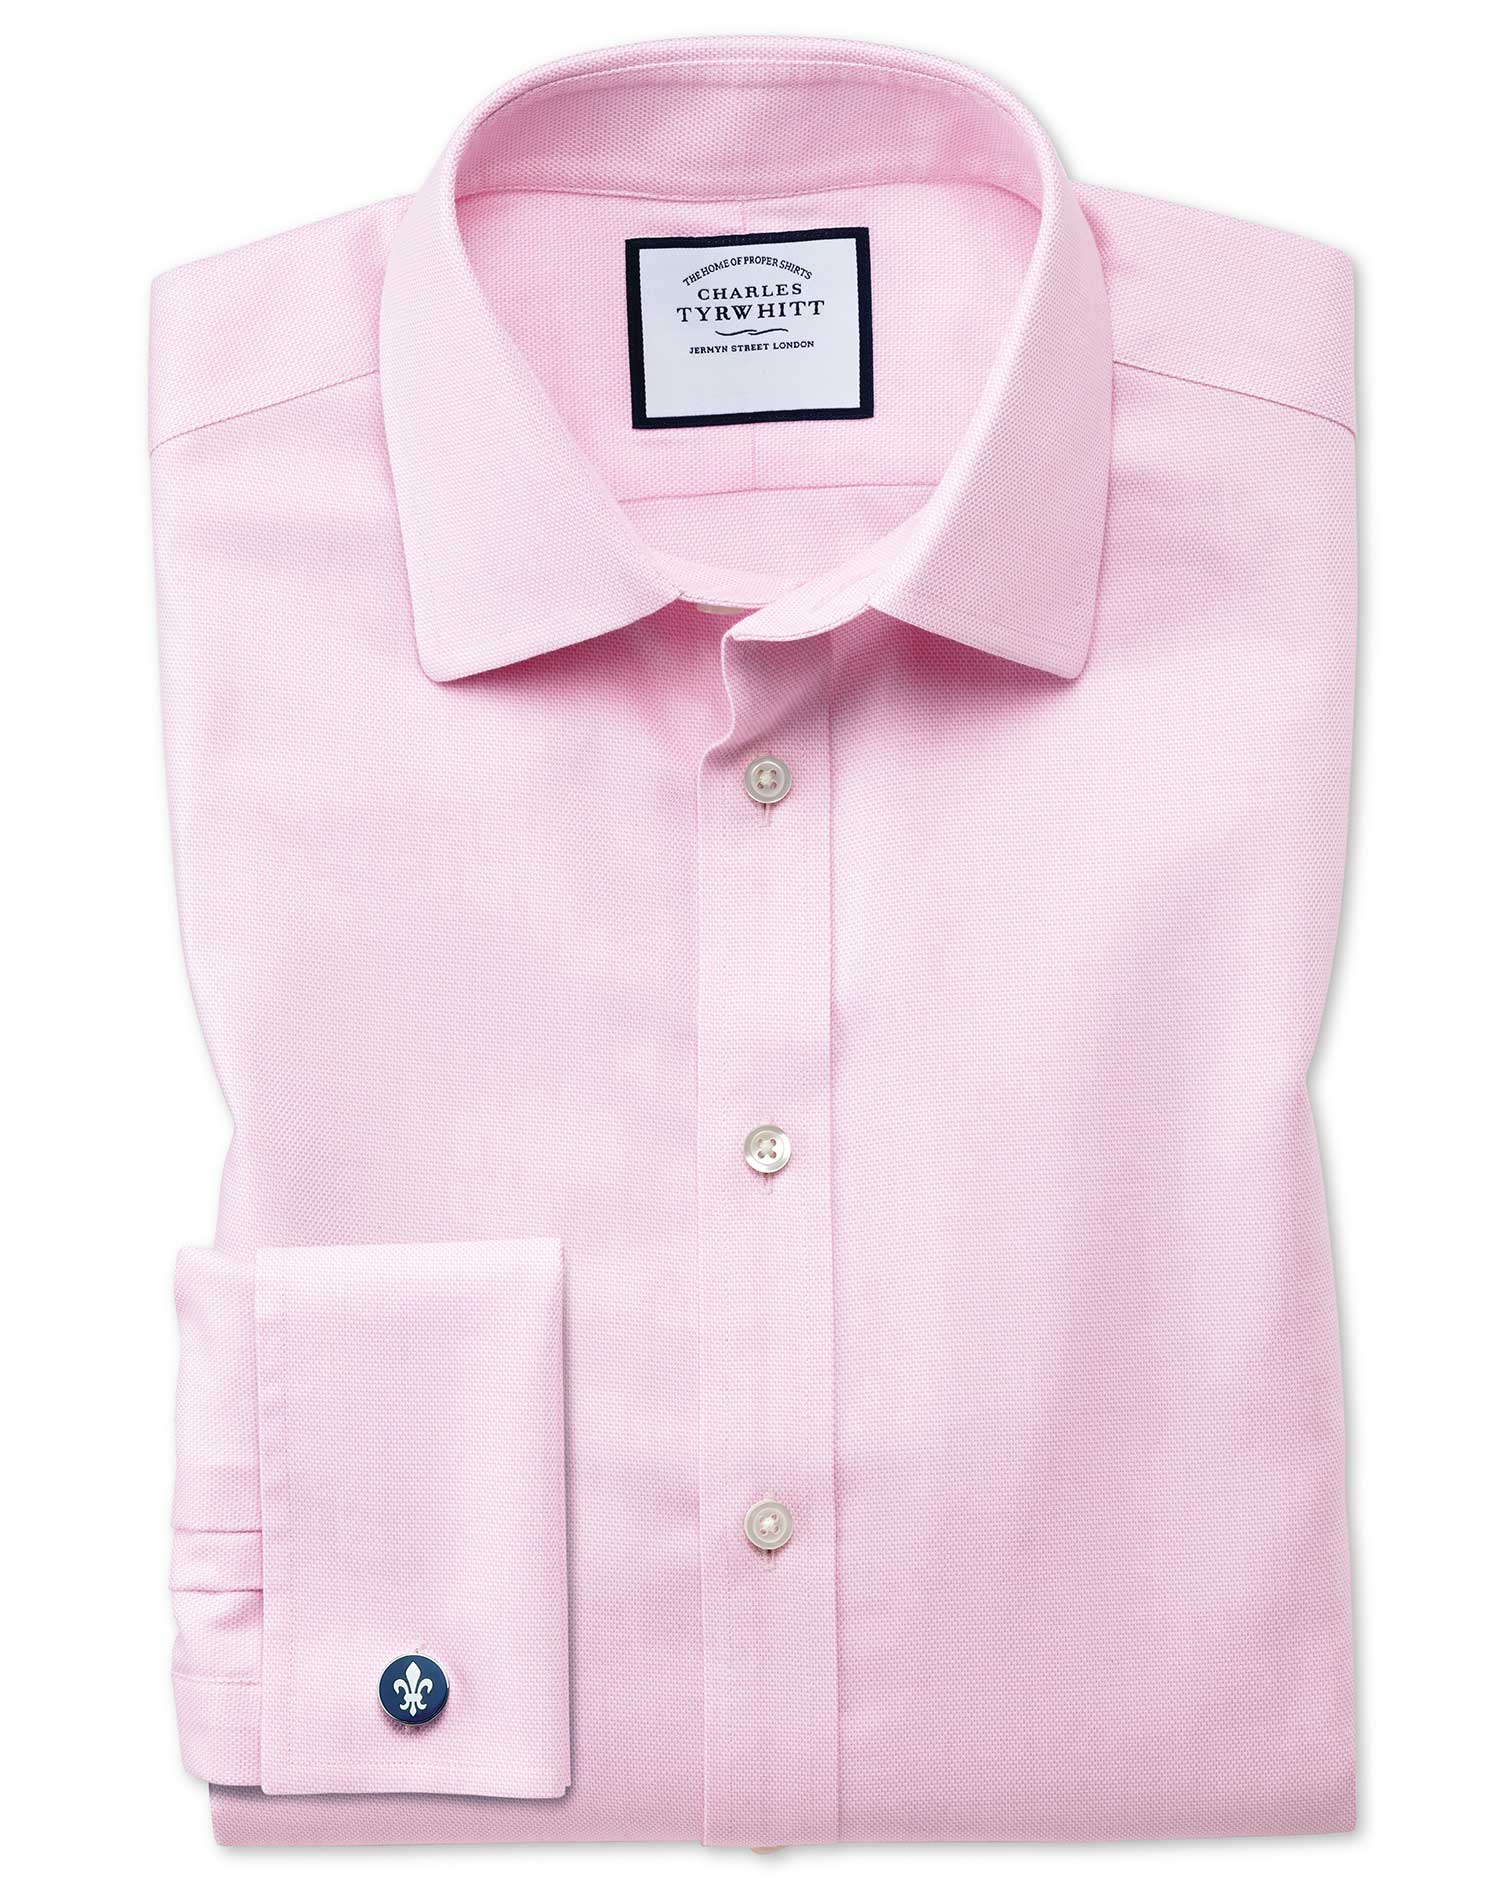 Classic Fit Non-Iron Step Weave Pink Cotton Formal Shirt Single Cuff Size 18/36 by Charles Tyrwhitt